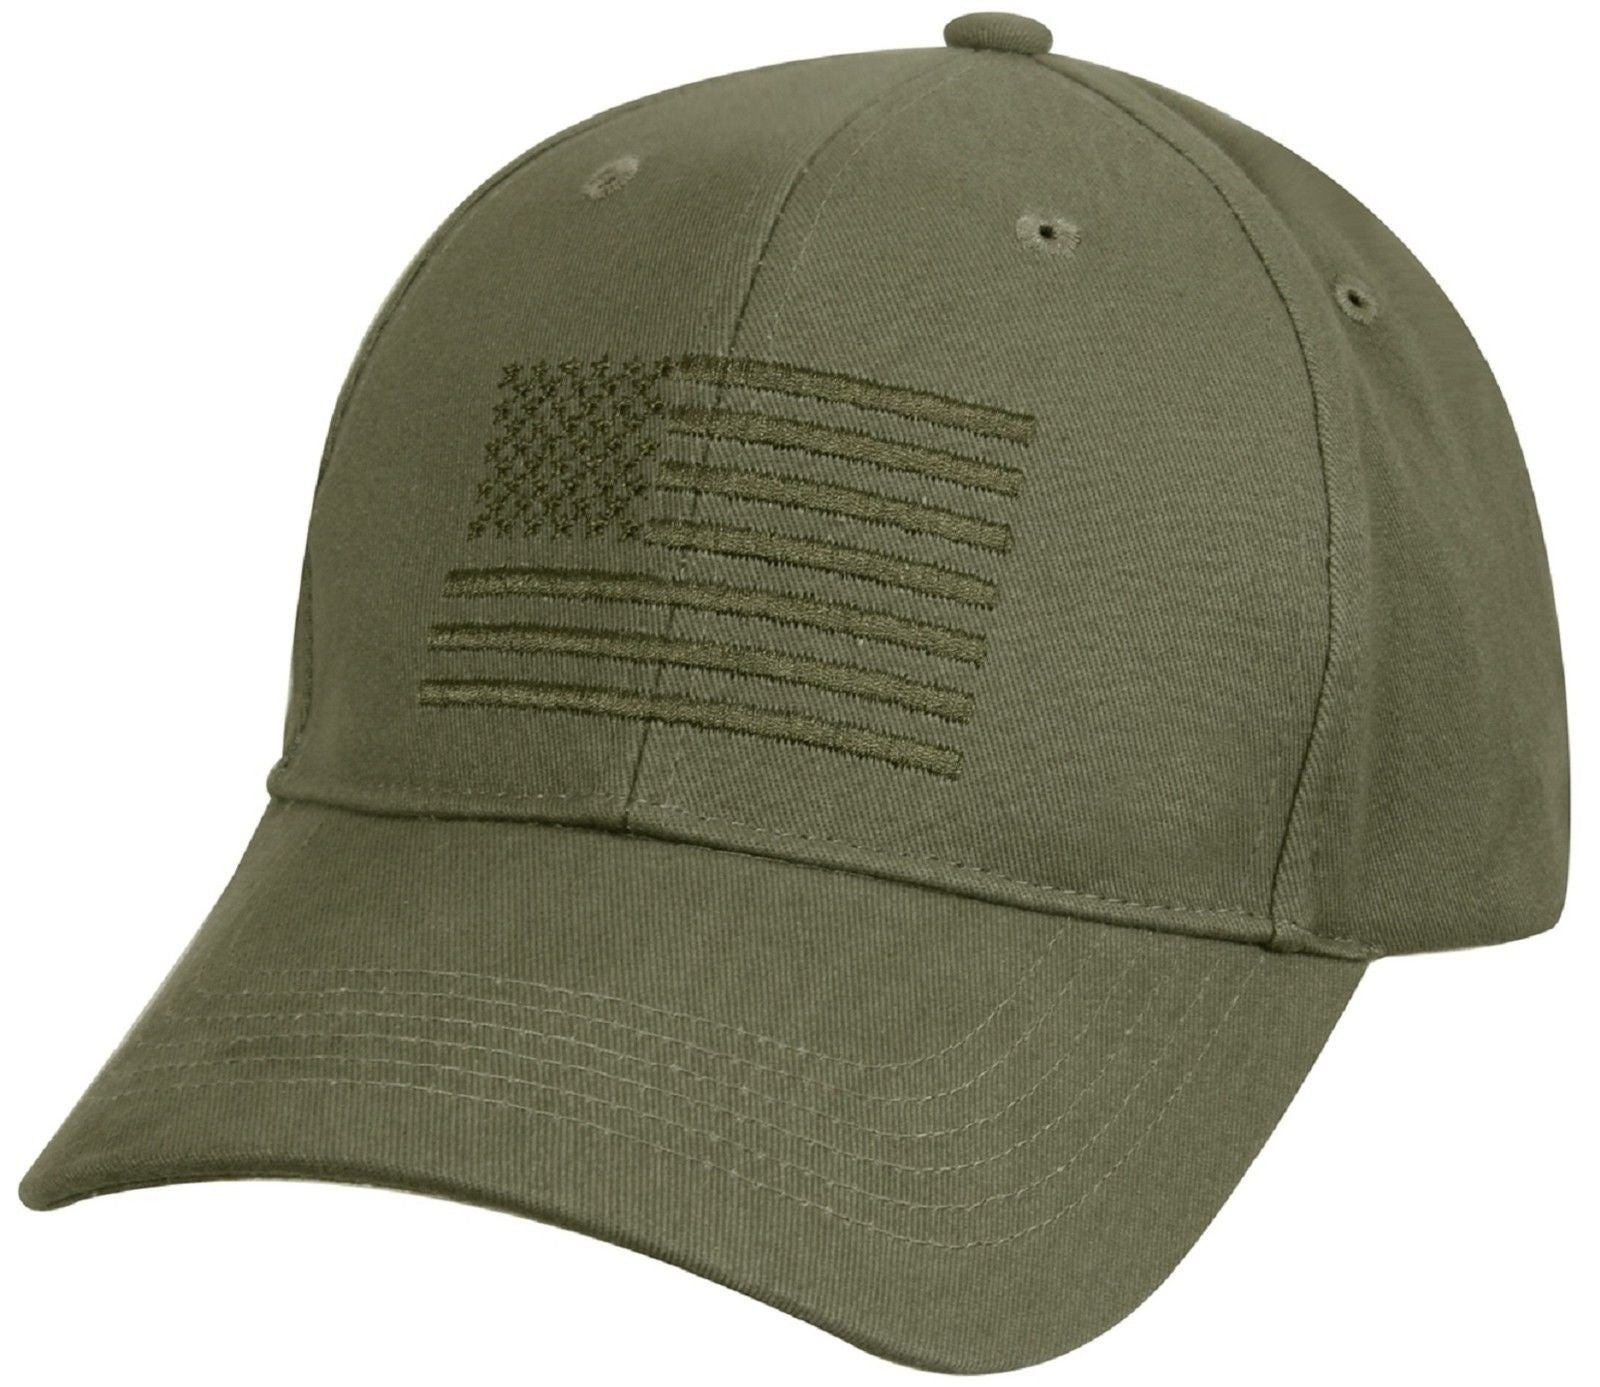 fdbbf481ff4 Mens Rothco Olive Drab Green Embroidered USA American Flag Baseball Hat Cap